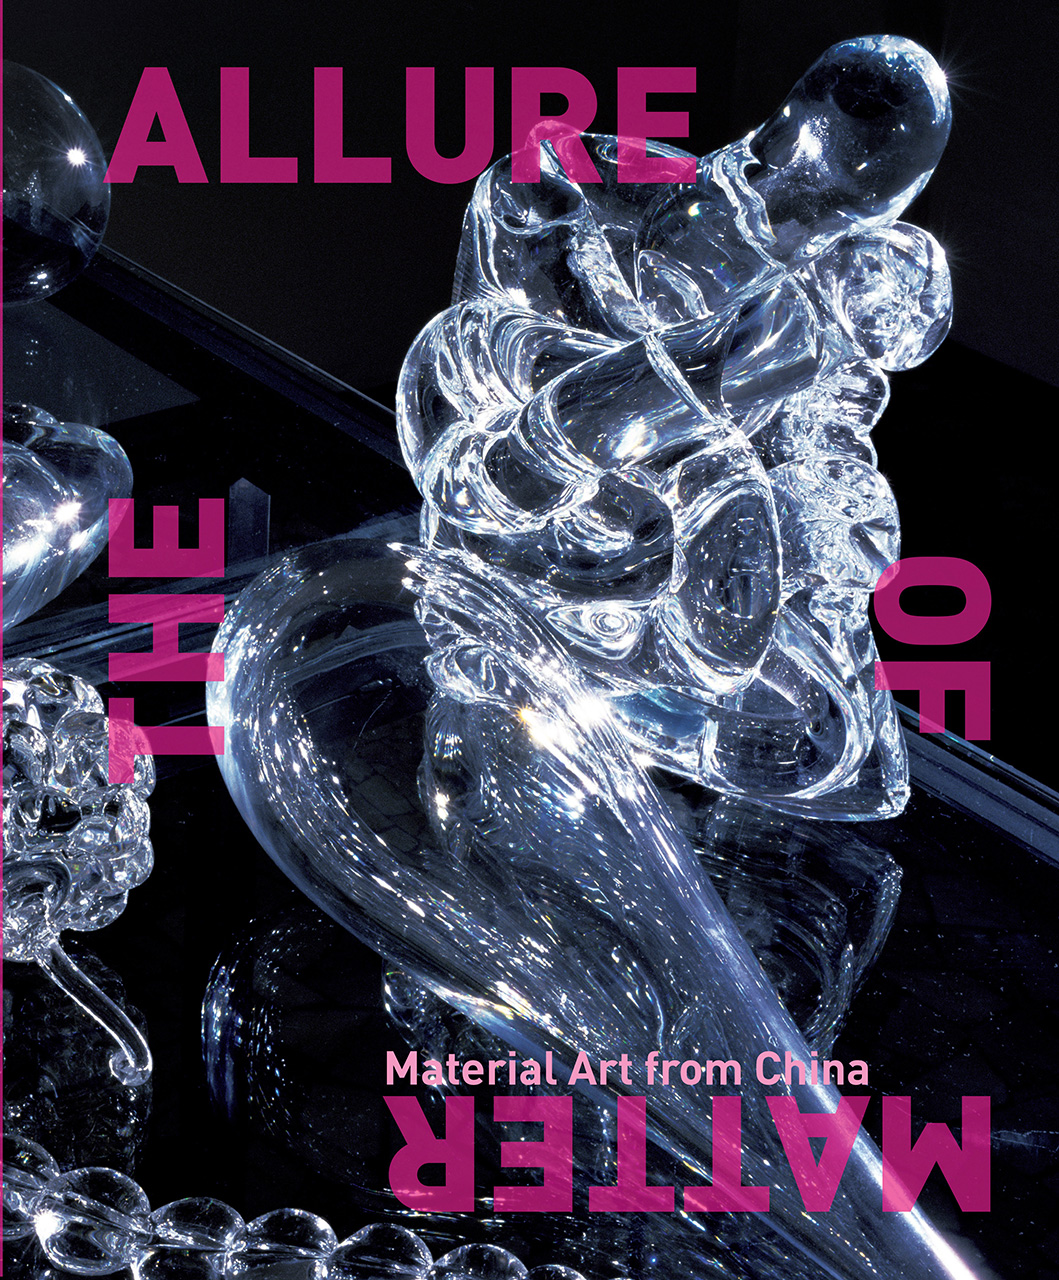 The Allure of Matter: Material Art from China